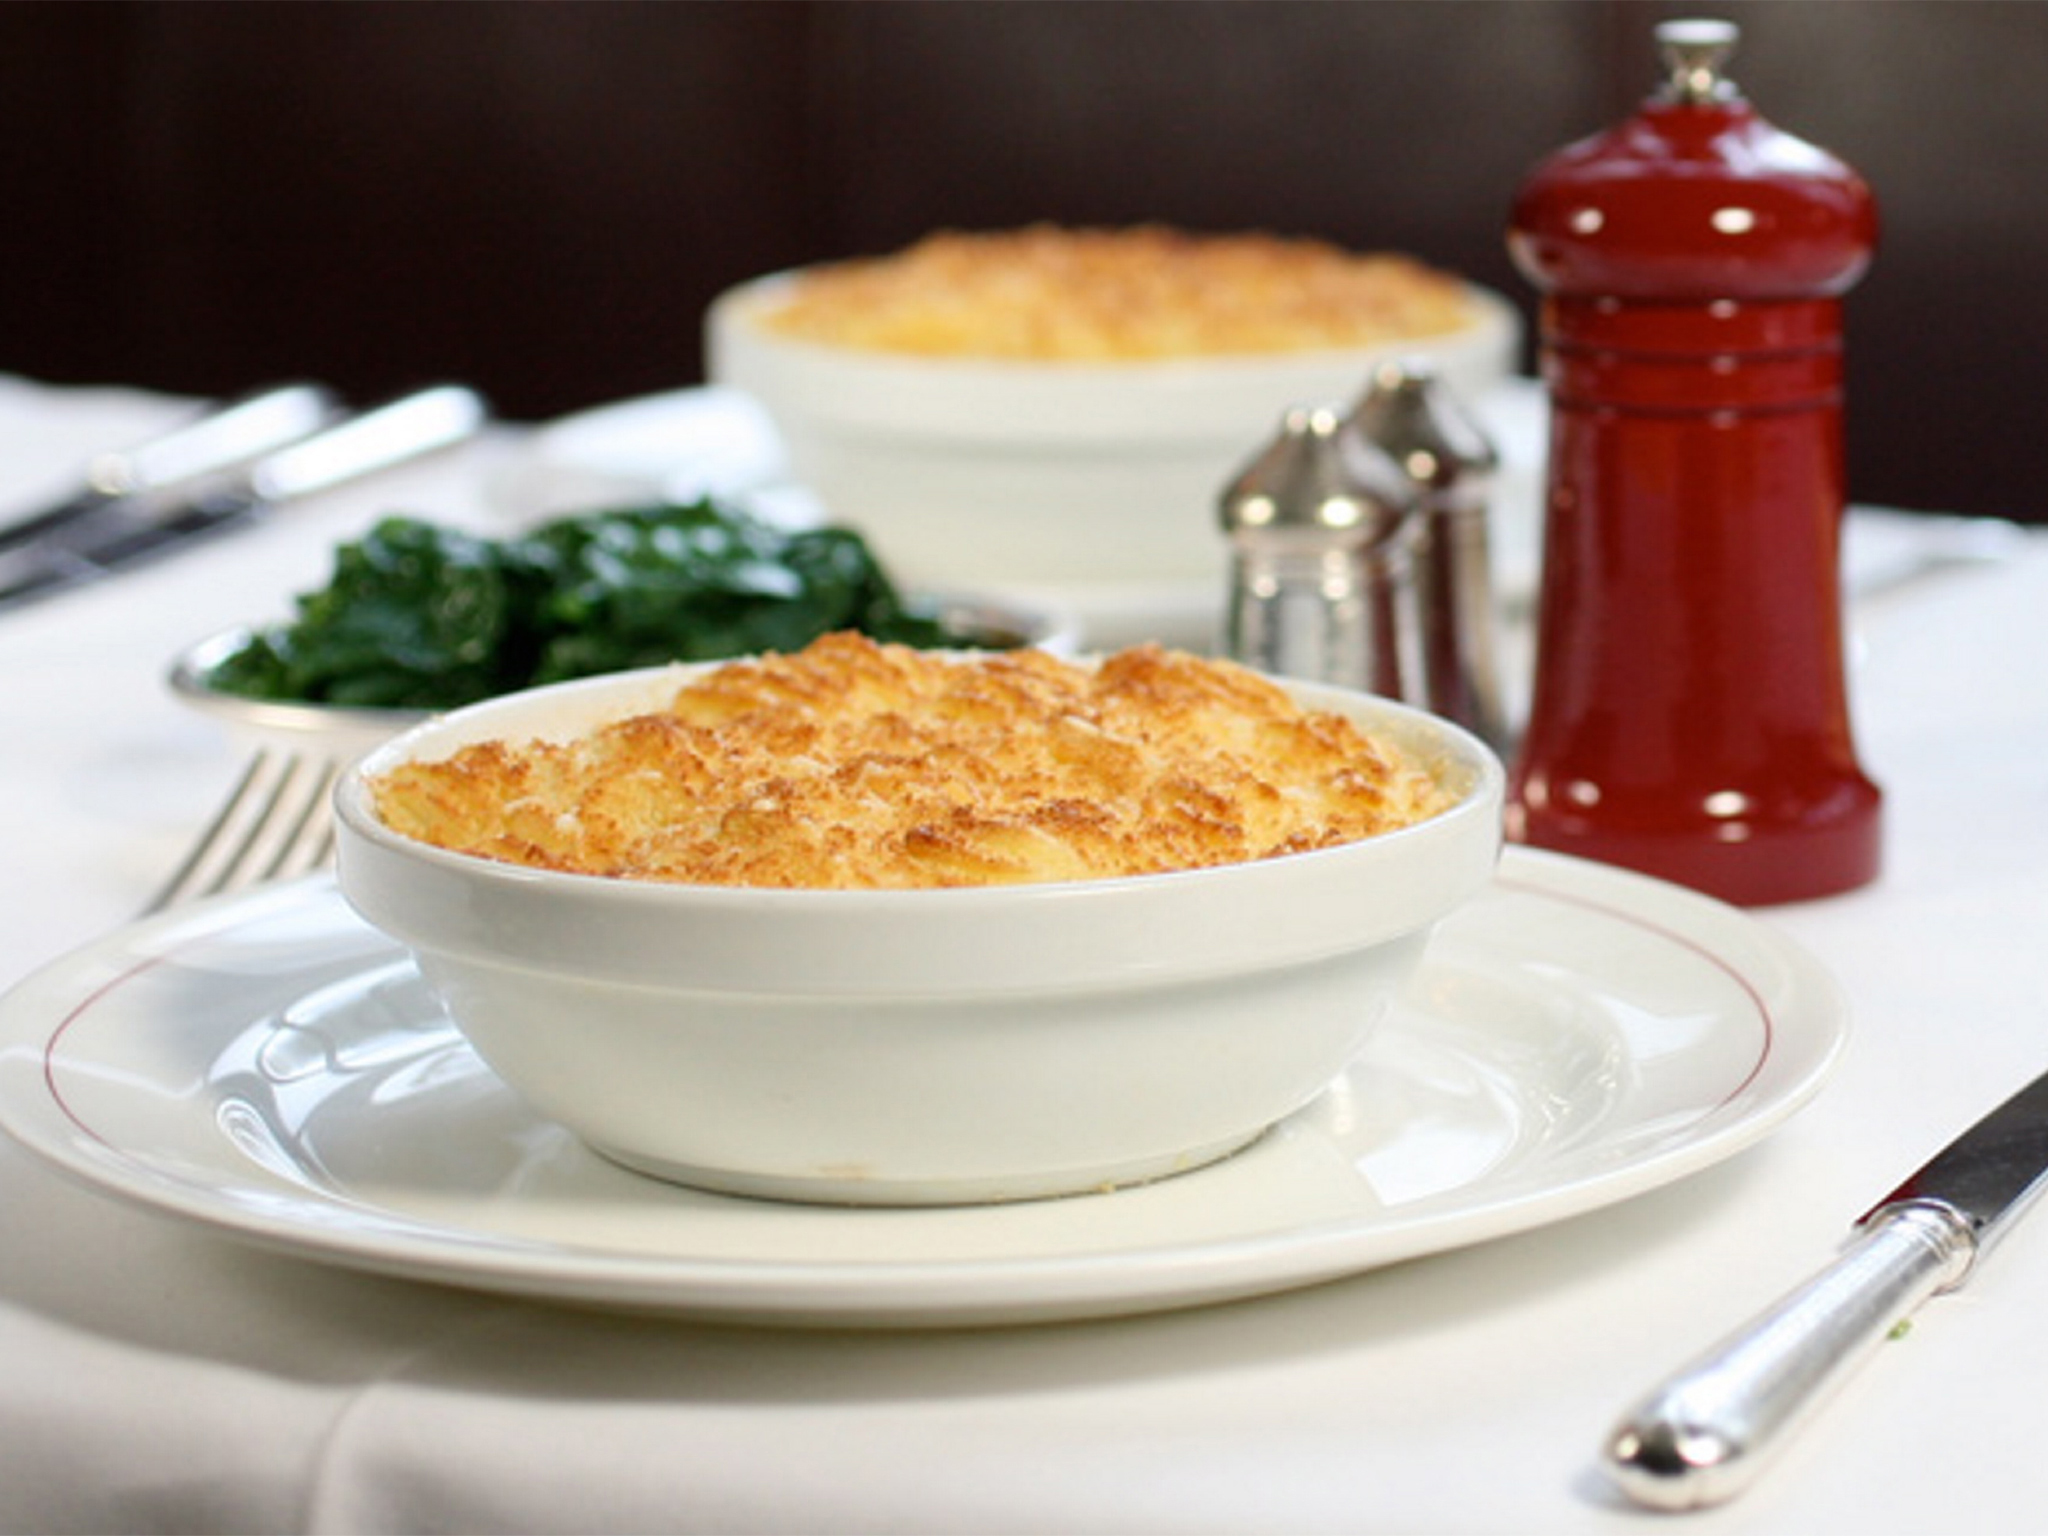 Fish pie at J Sheekey Oyster Bar